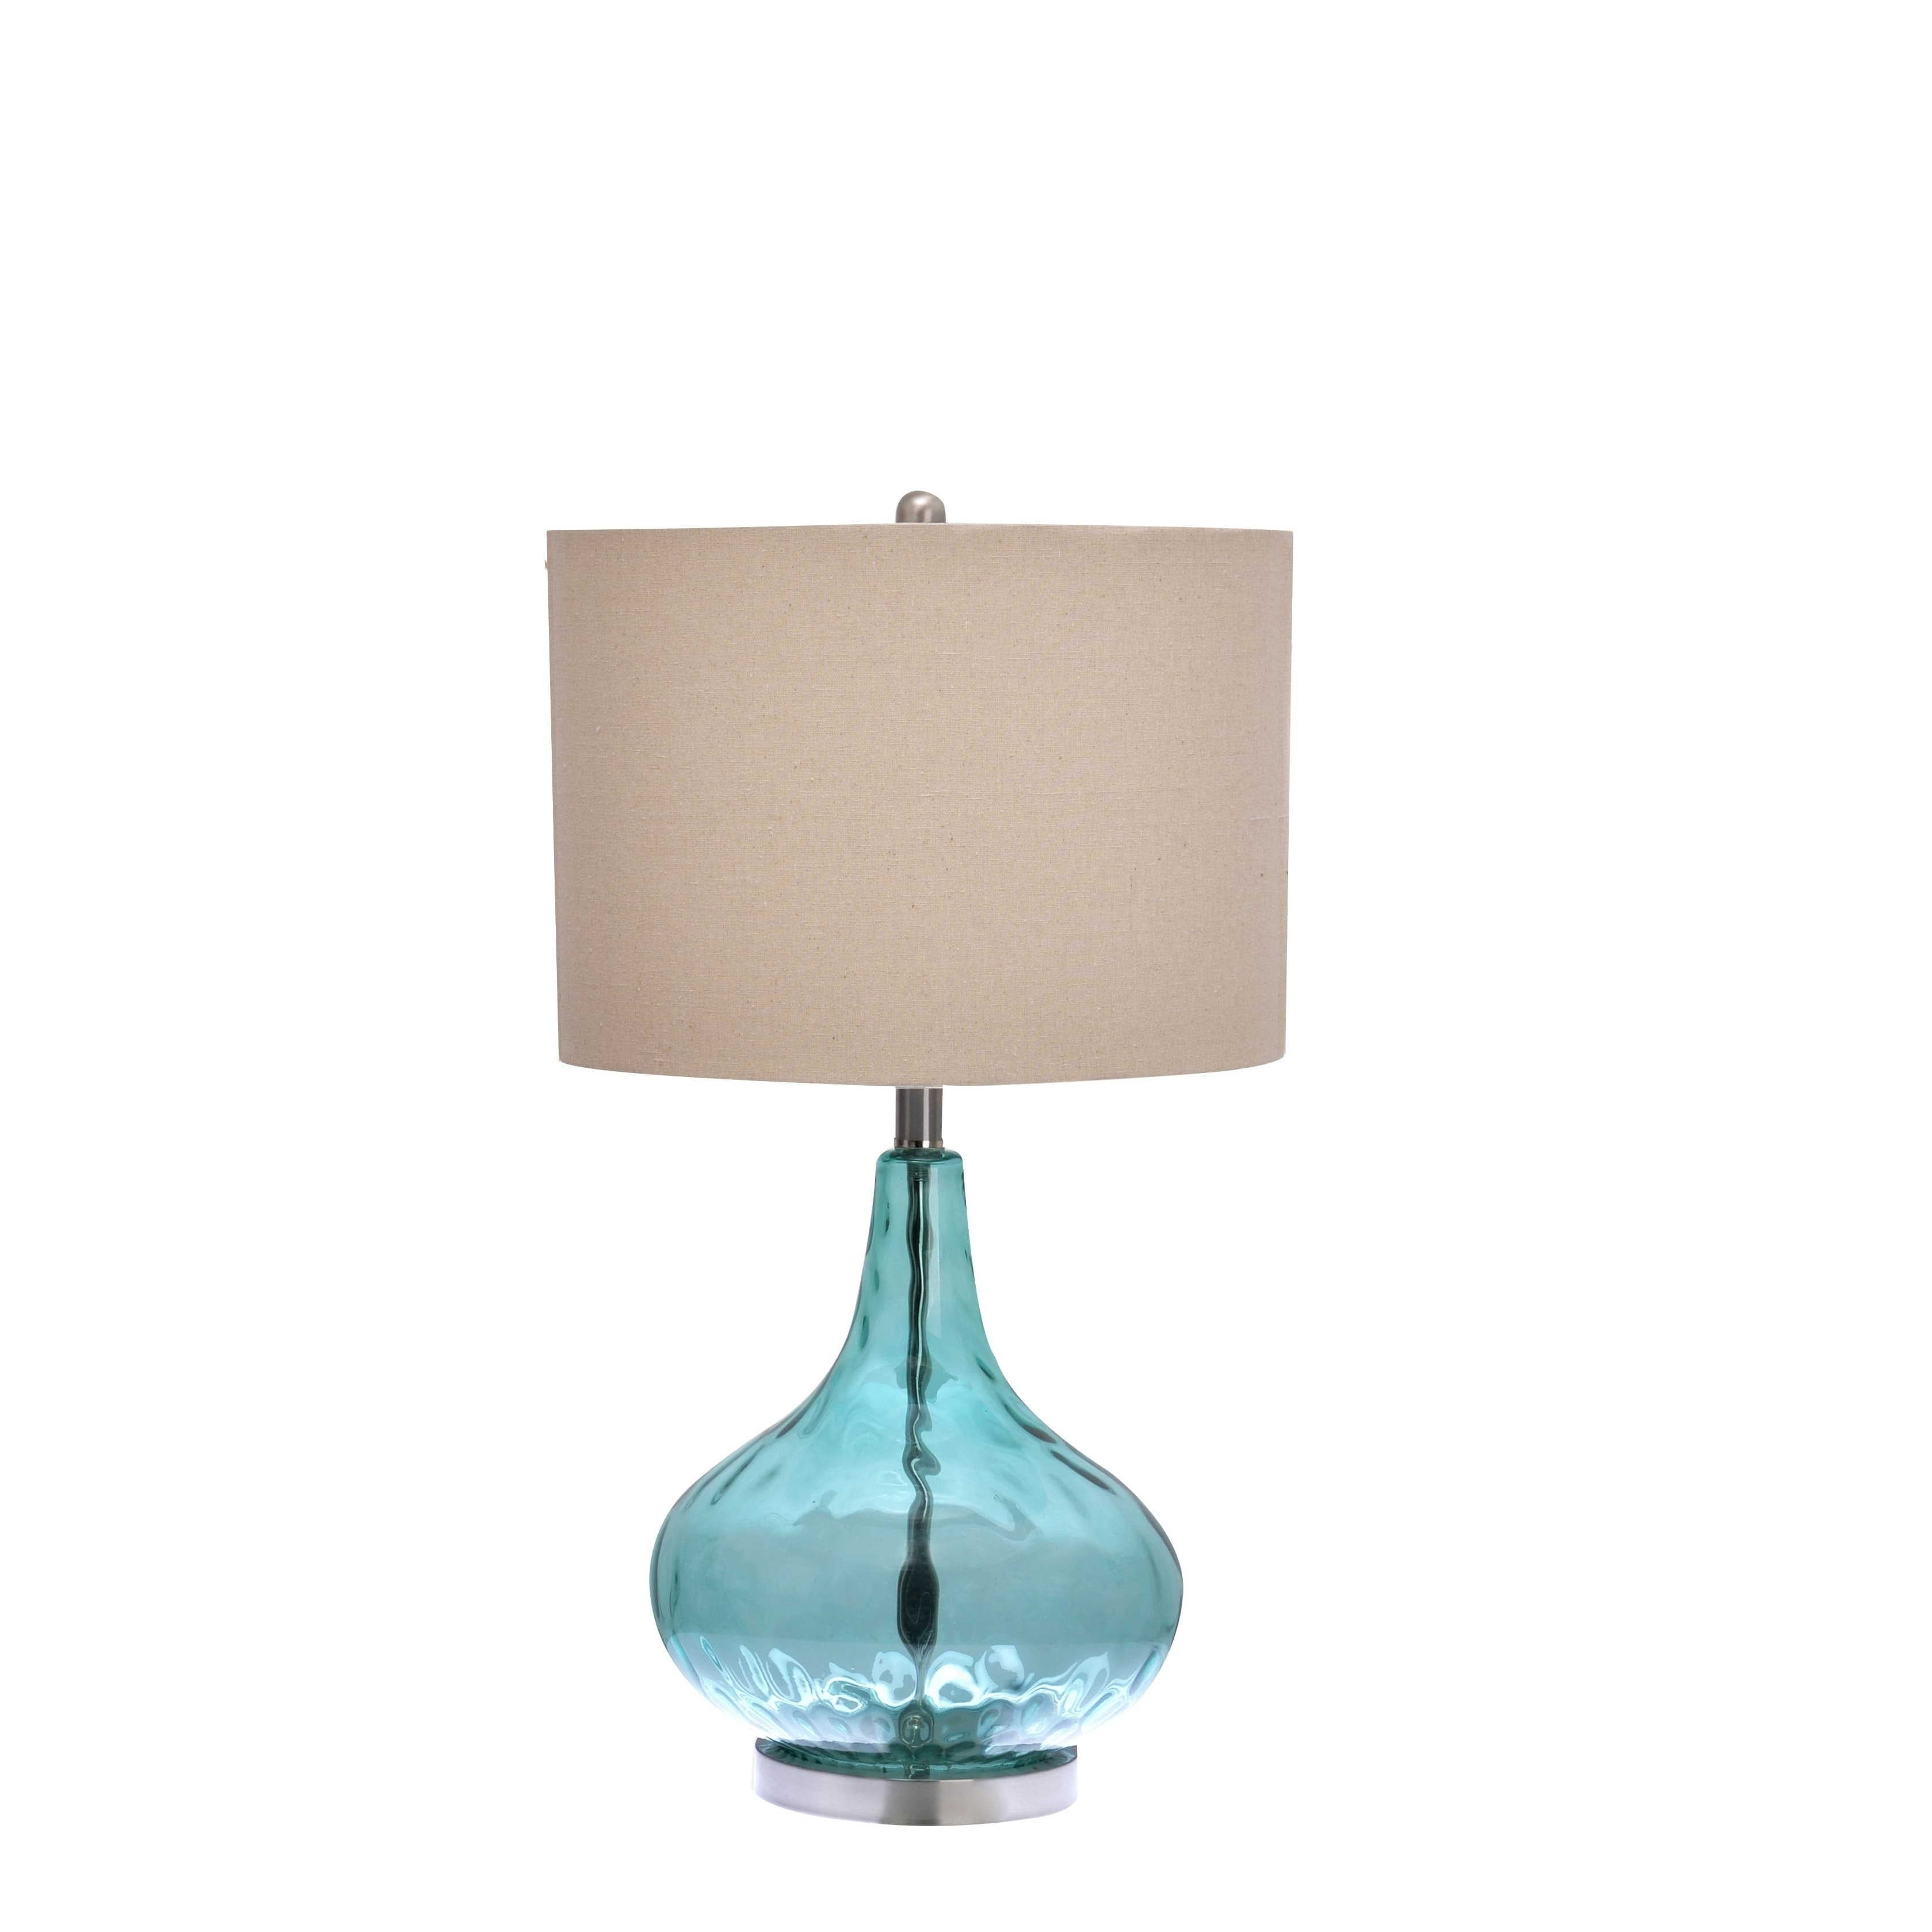 Copper Grove Laurier Catalina Blue Glass 3-way Gourd Table Lamp